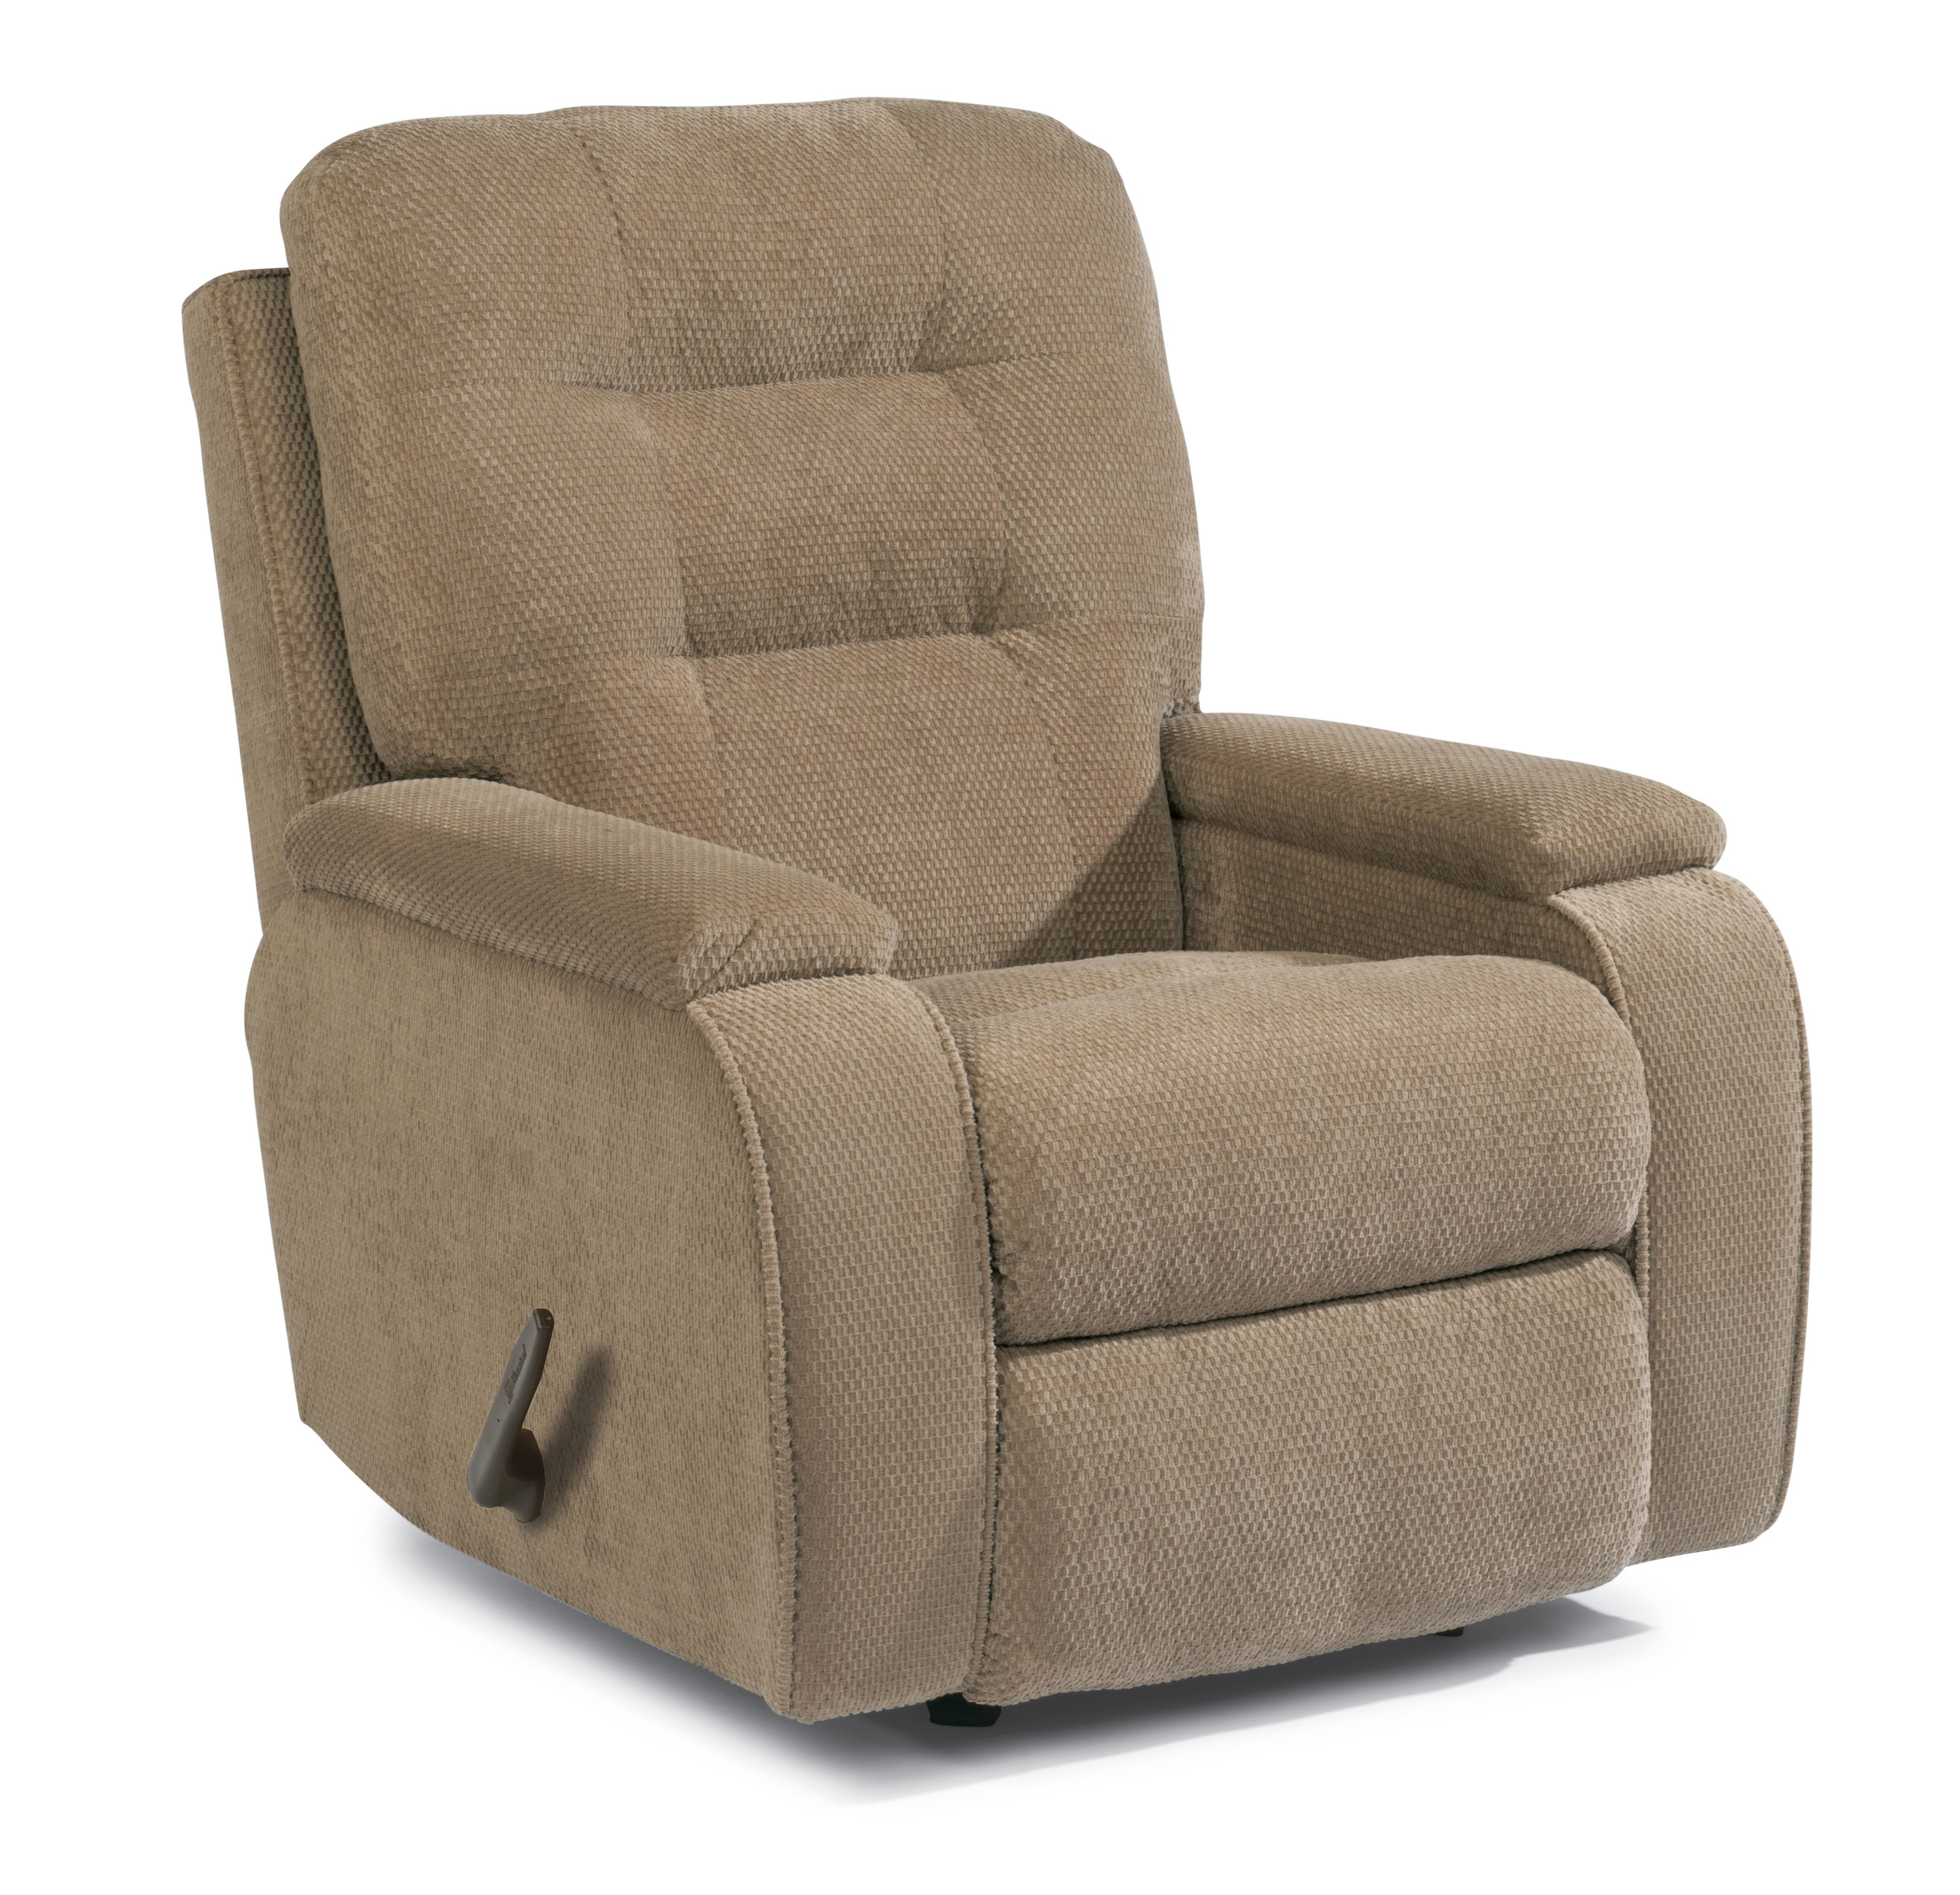 Flexsteel Accents 2806 51 Kerrie Recliner With Channeled